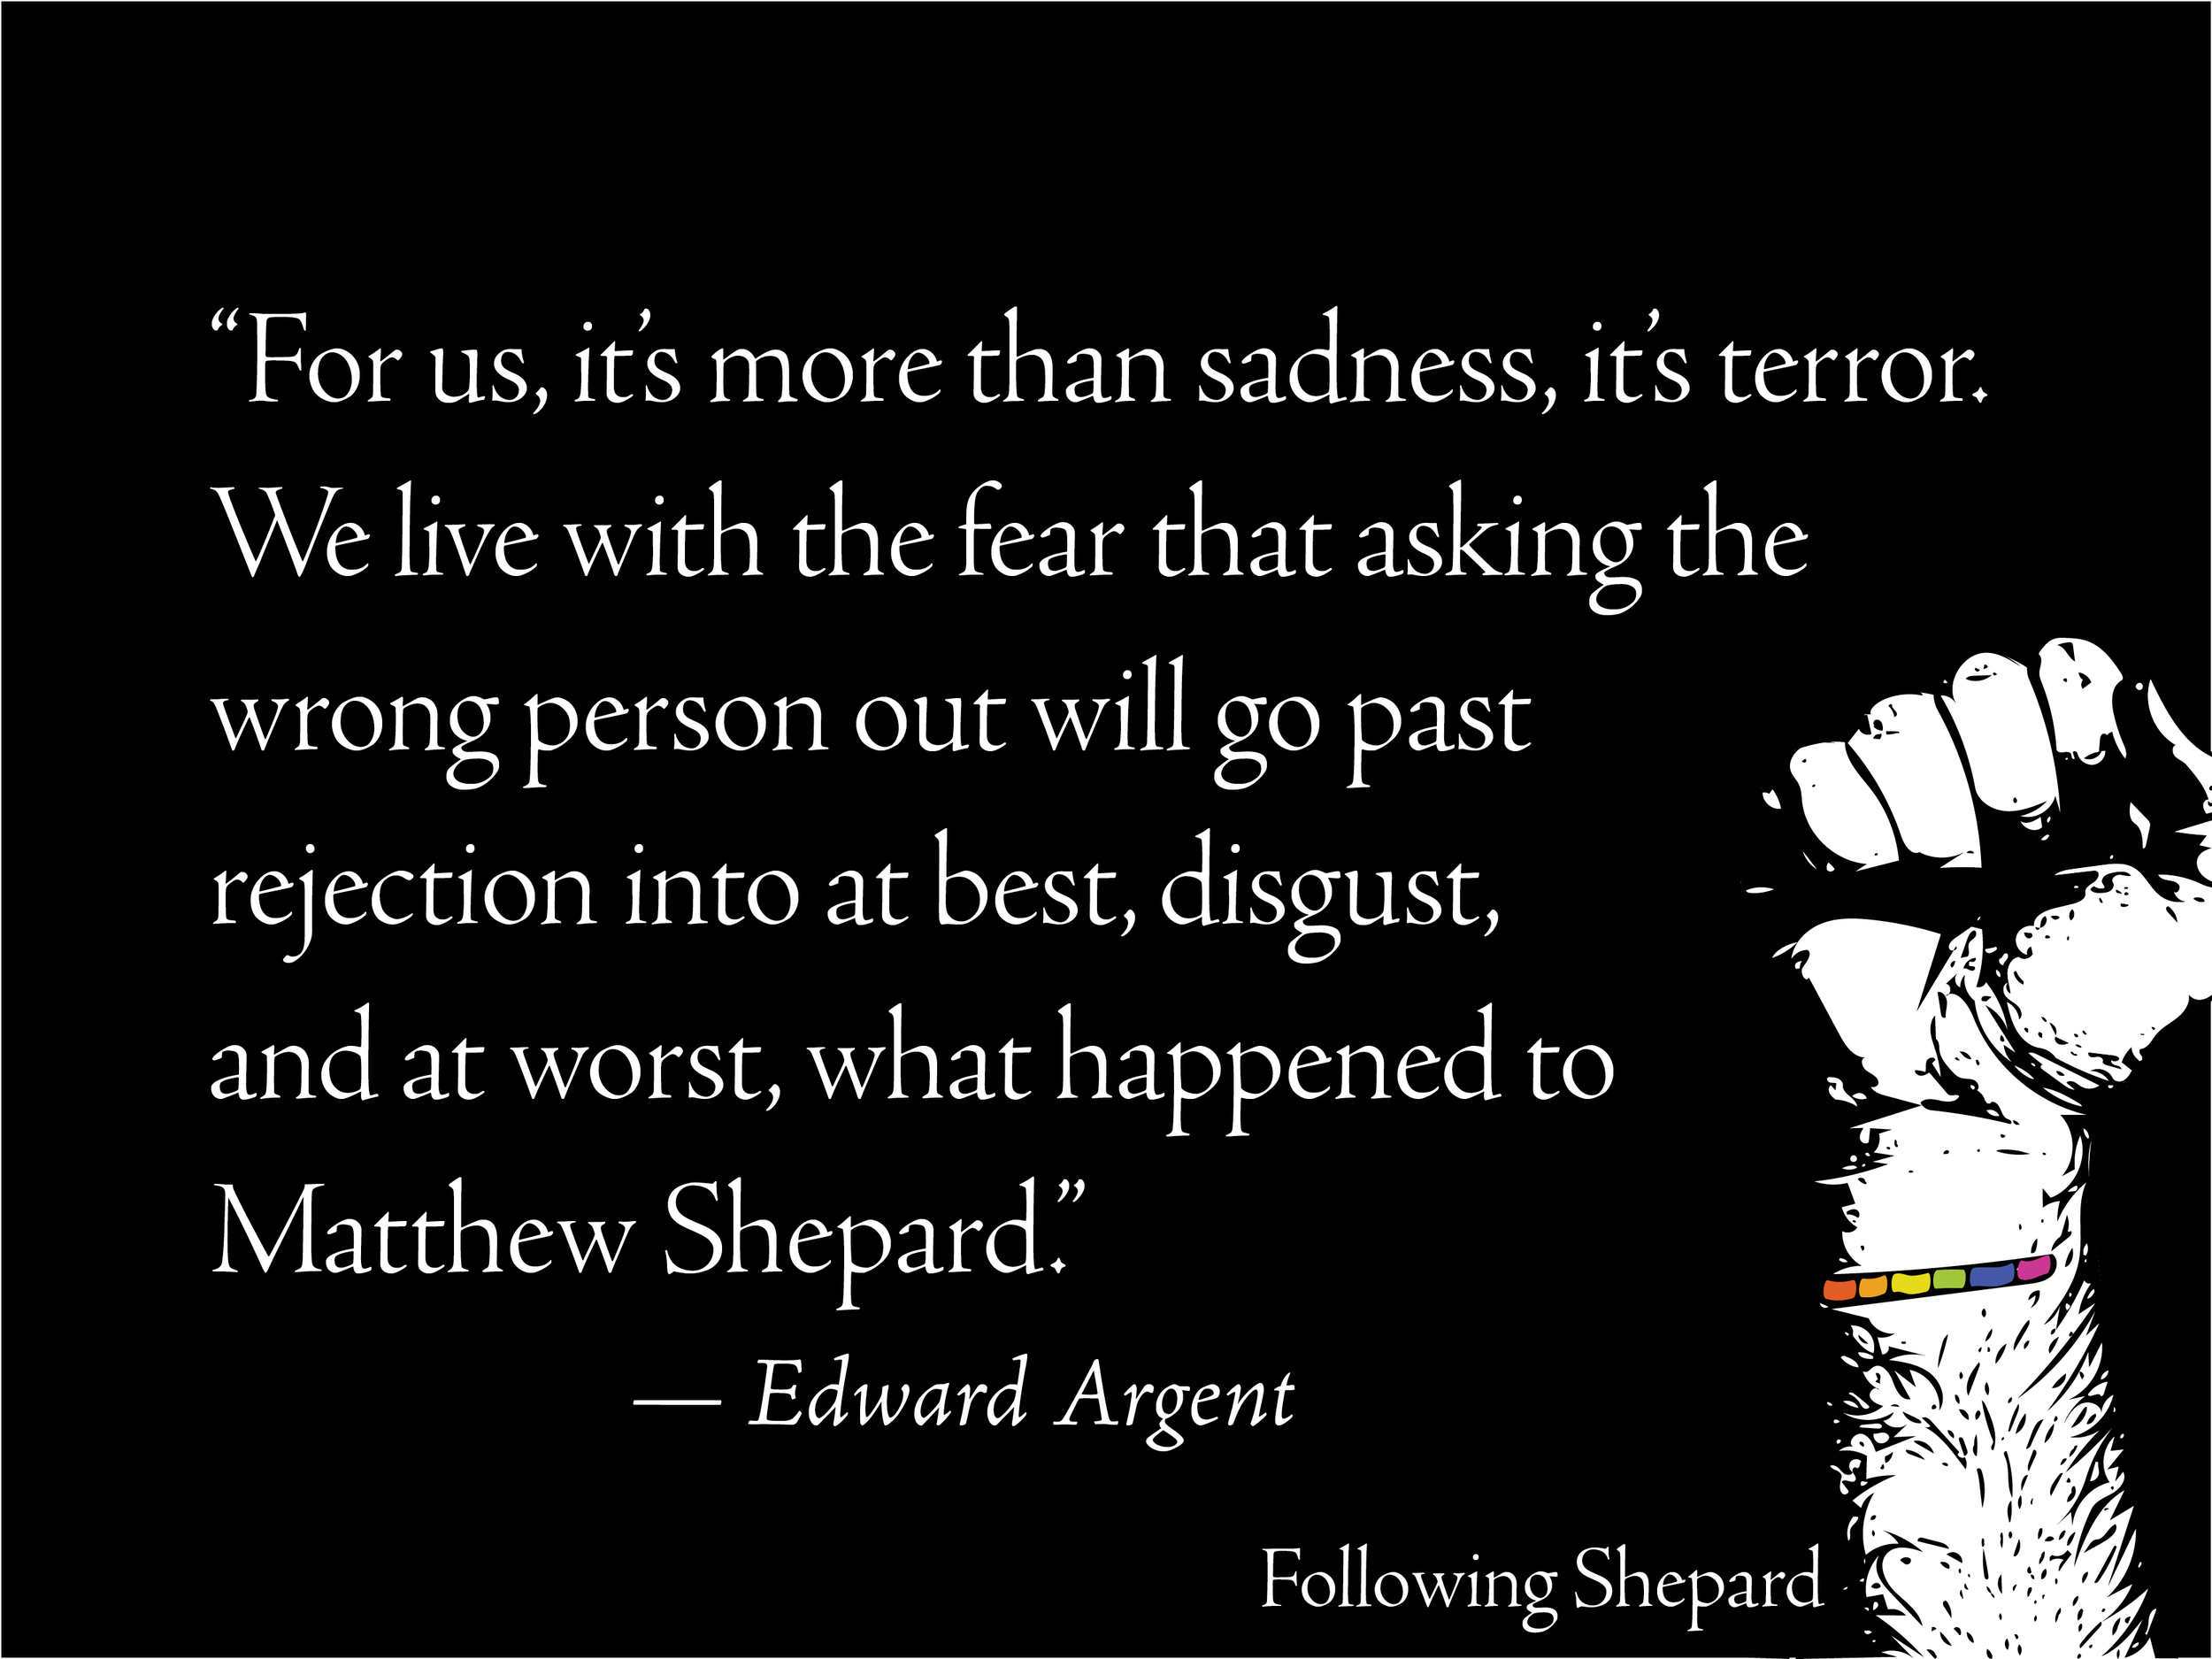 Following Shepard Quote Images10.jpg